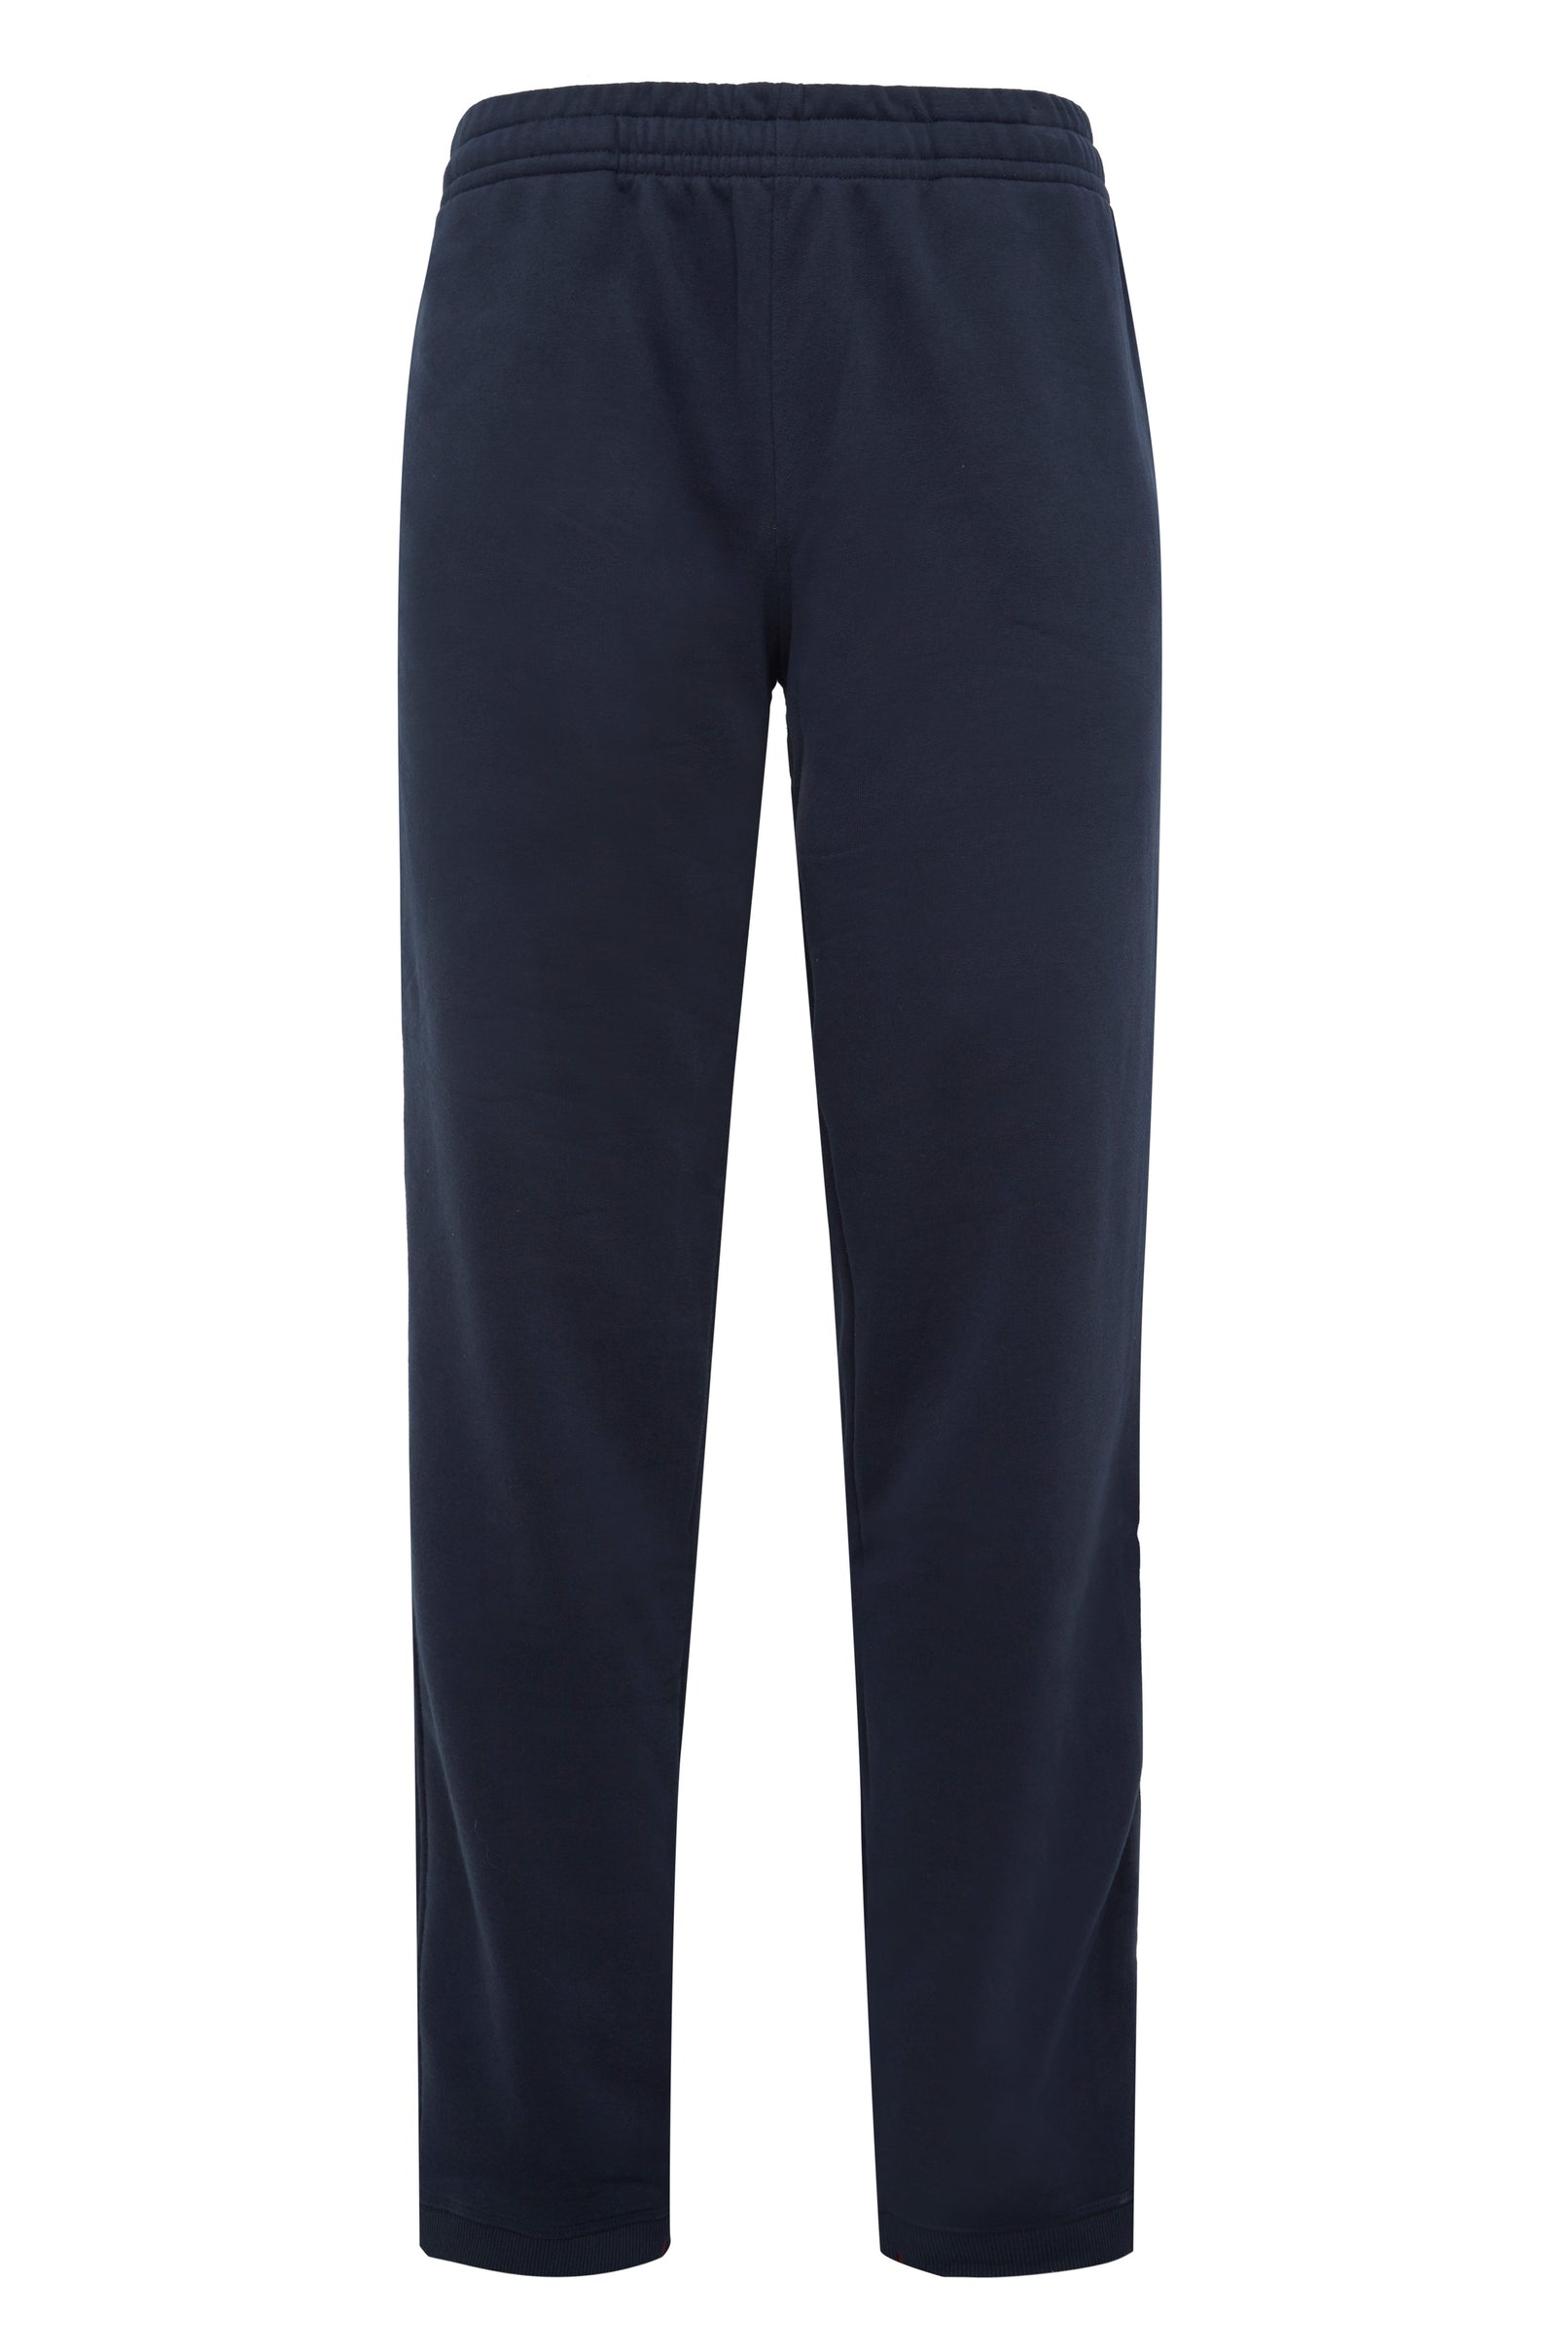 Total Eclipse Brushed Soft Handle Sweatpant